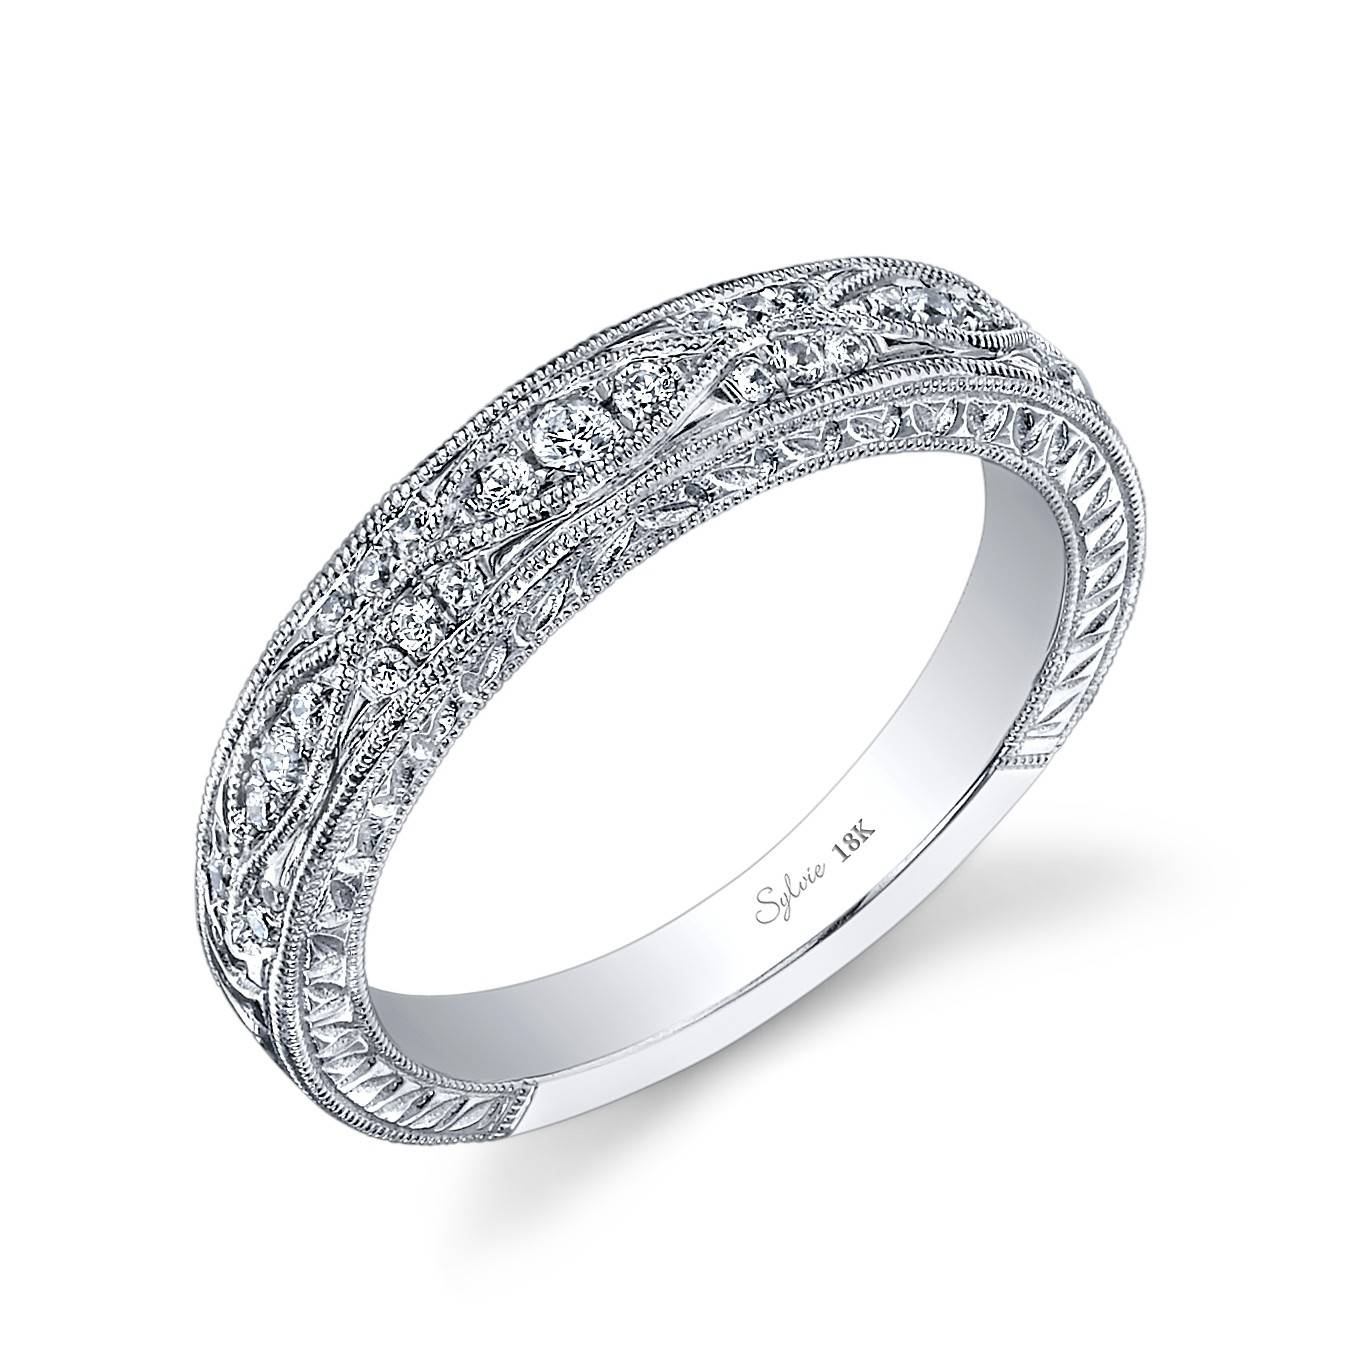 Wedding Rings : Engraved Wedding Band Designs Engravable Wedding Regarding Engravable Wedding Bands (View 9 of 15)